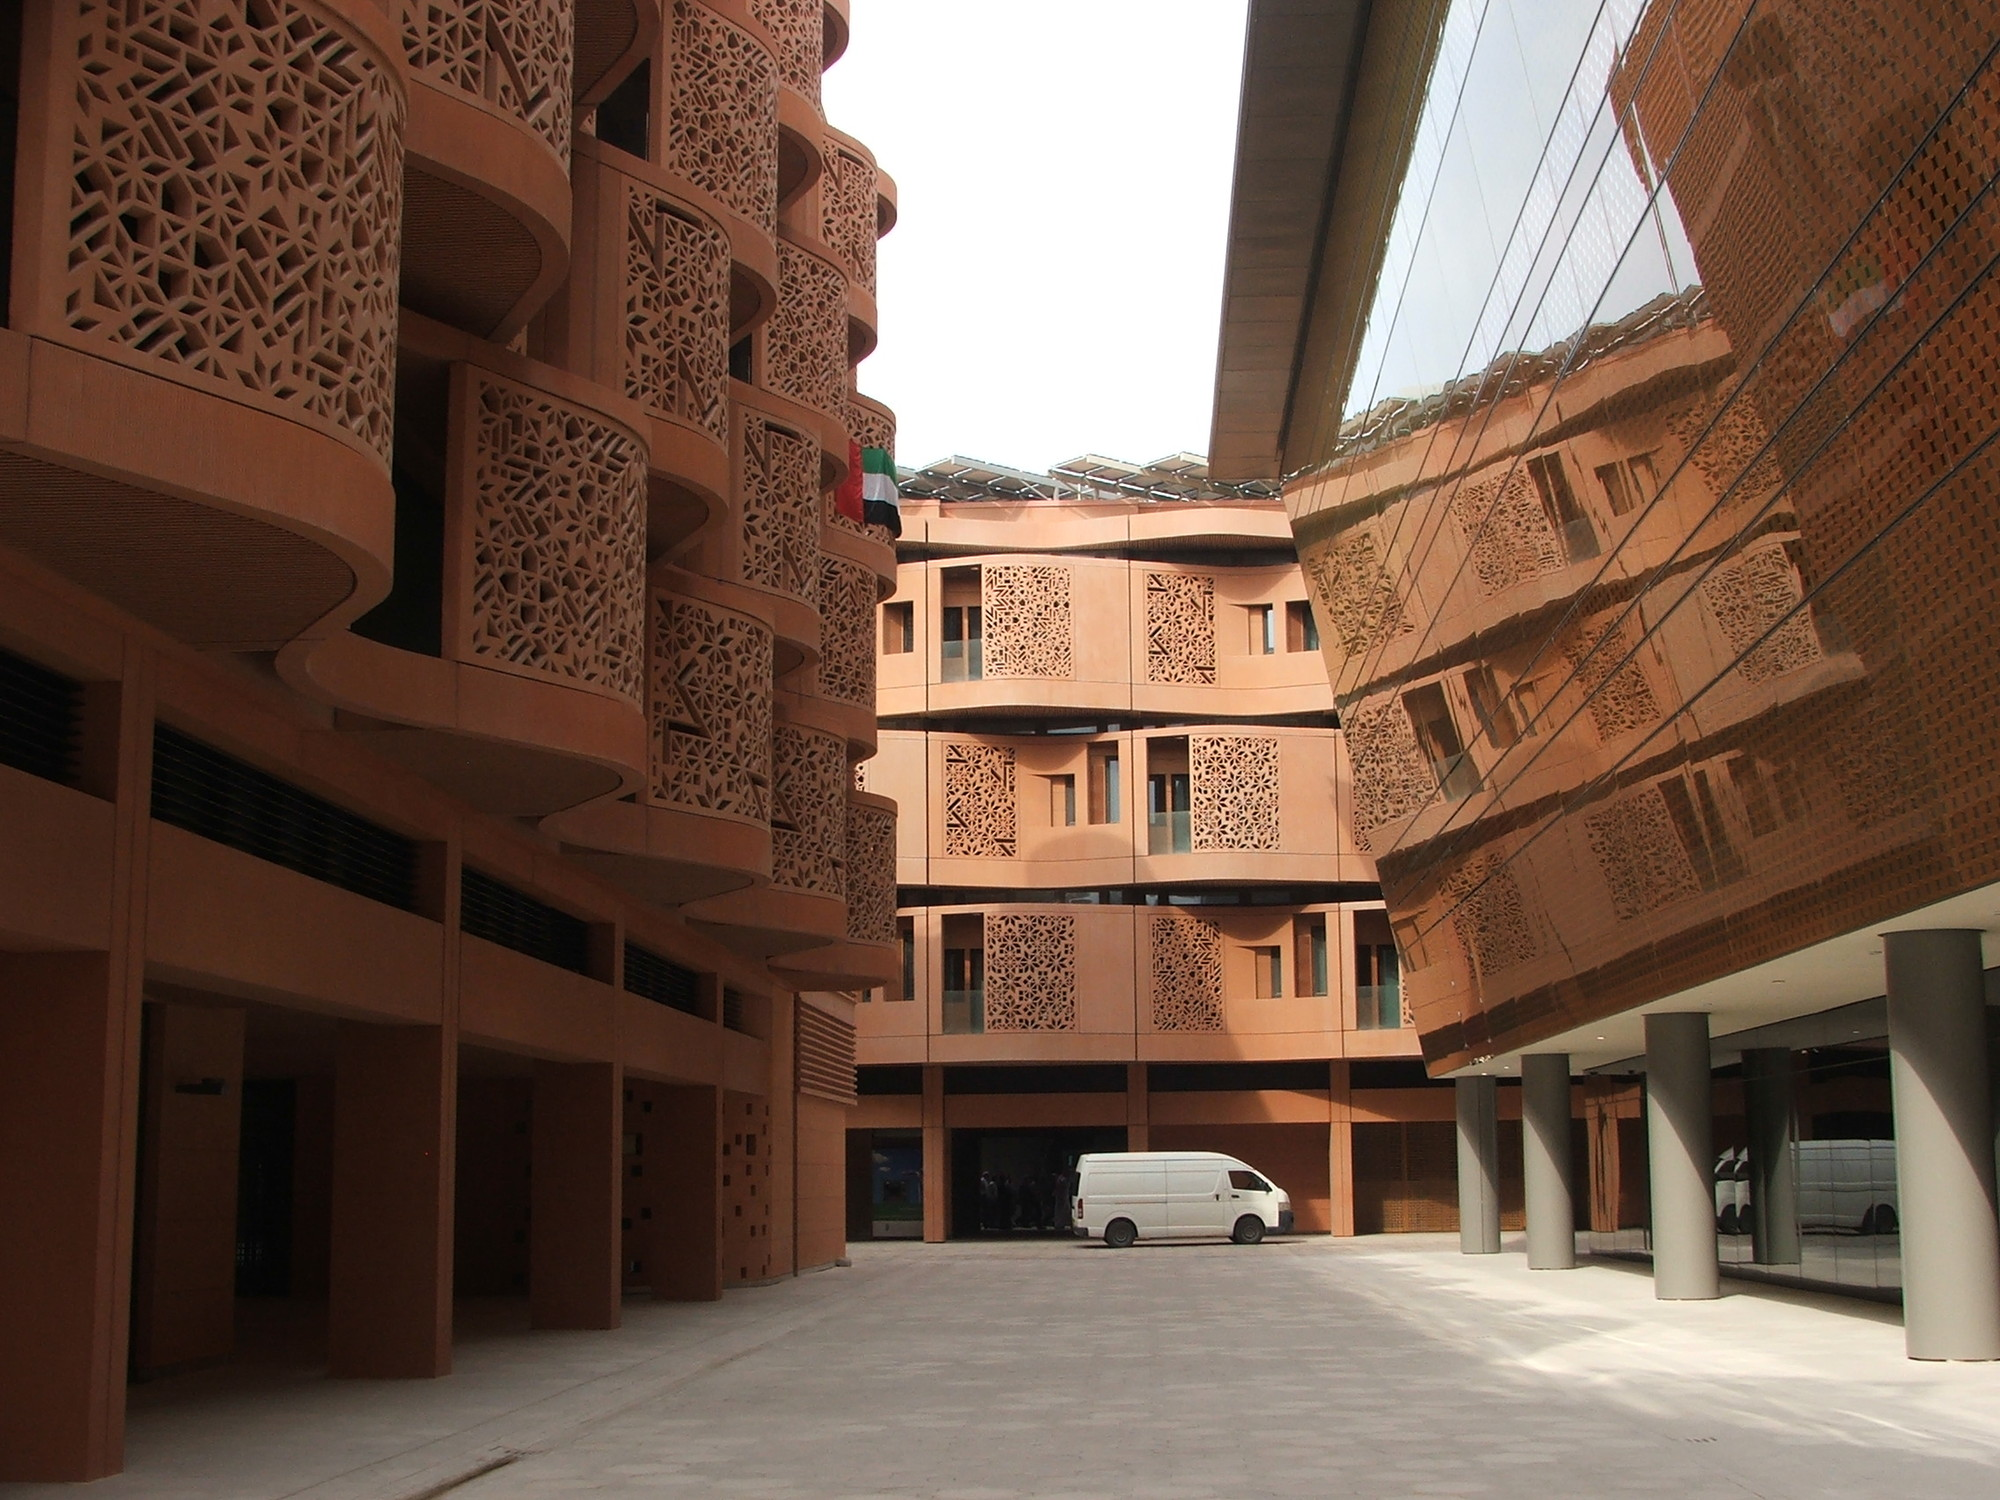 Inside Masdar City, Masdar's Incubator Building banks away from its roof line to add pedestrian space while constructing the aperture between buildings above to limit the amount of sunlight hitting the street surface. Image © Tyler Caine